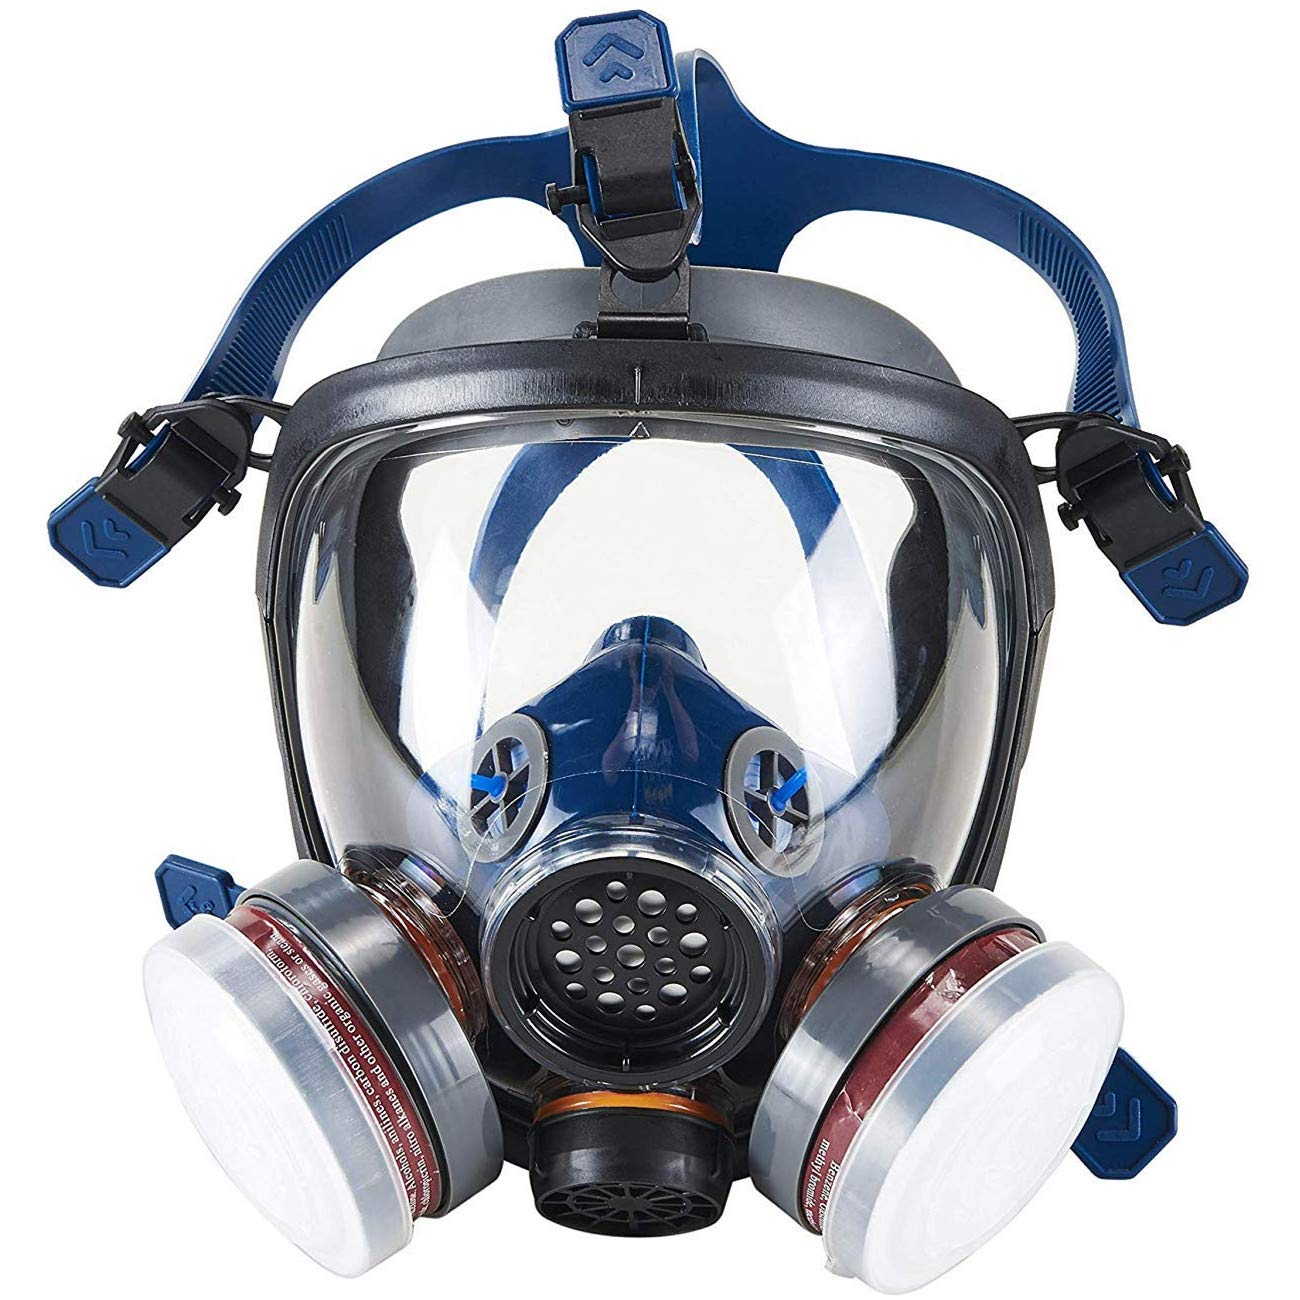 Organic Vapor Full Face Respirator Safety Mask, IVSUN Activated Carbon Respirator Paint Respirator Gas Chemical Dustproof Pesticides Mask (Respirator +1 Pair LDY3 Cartridges) by IVSUN